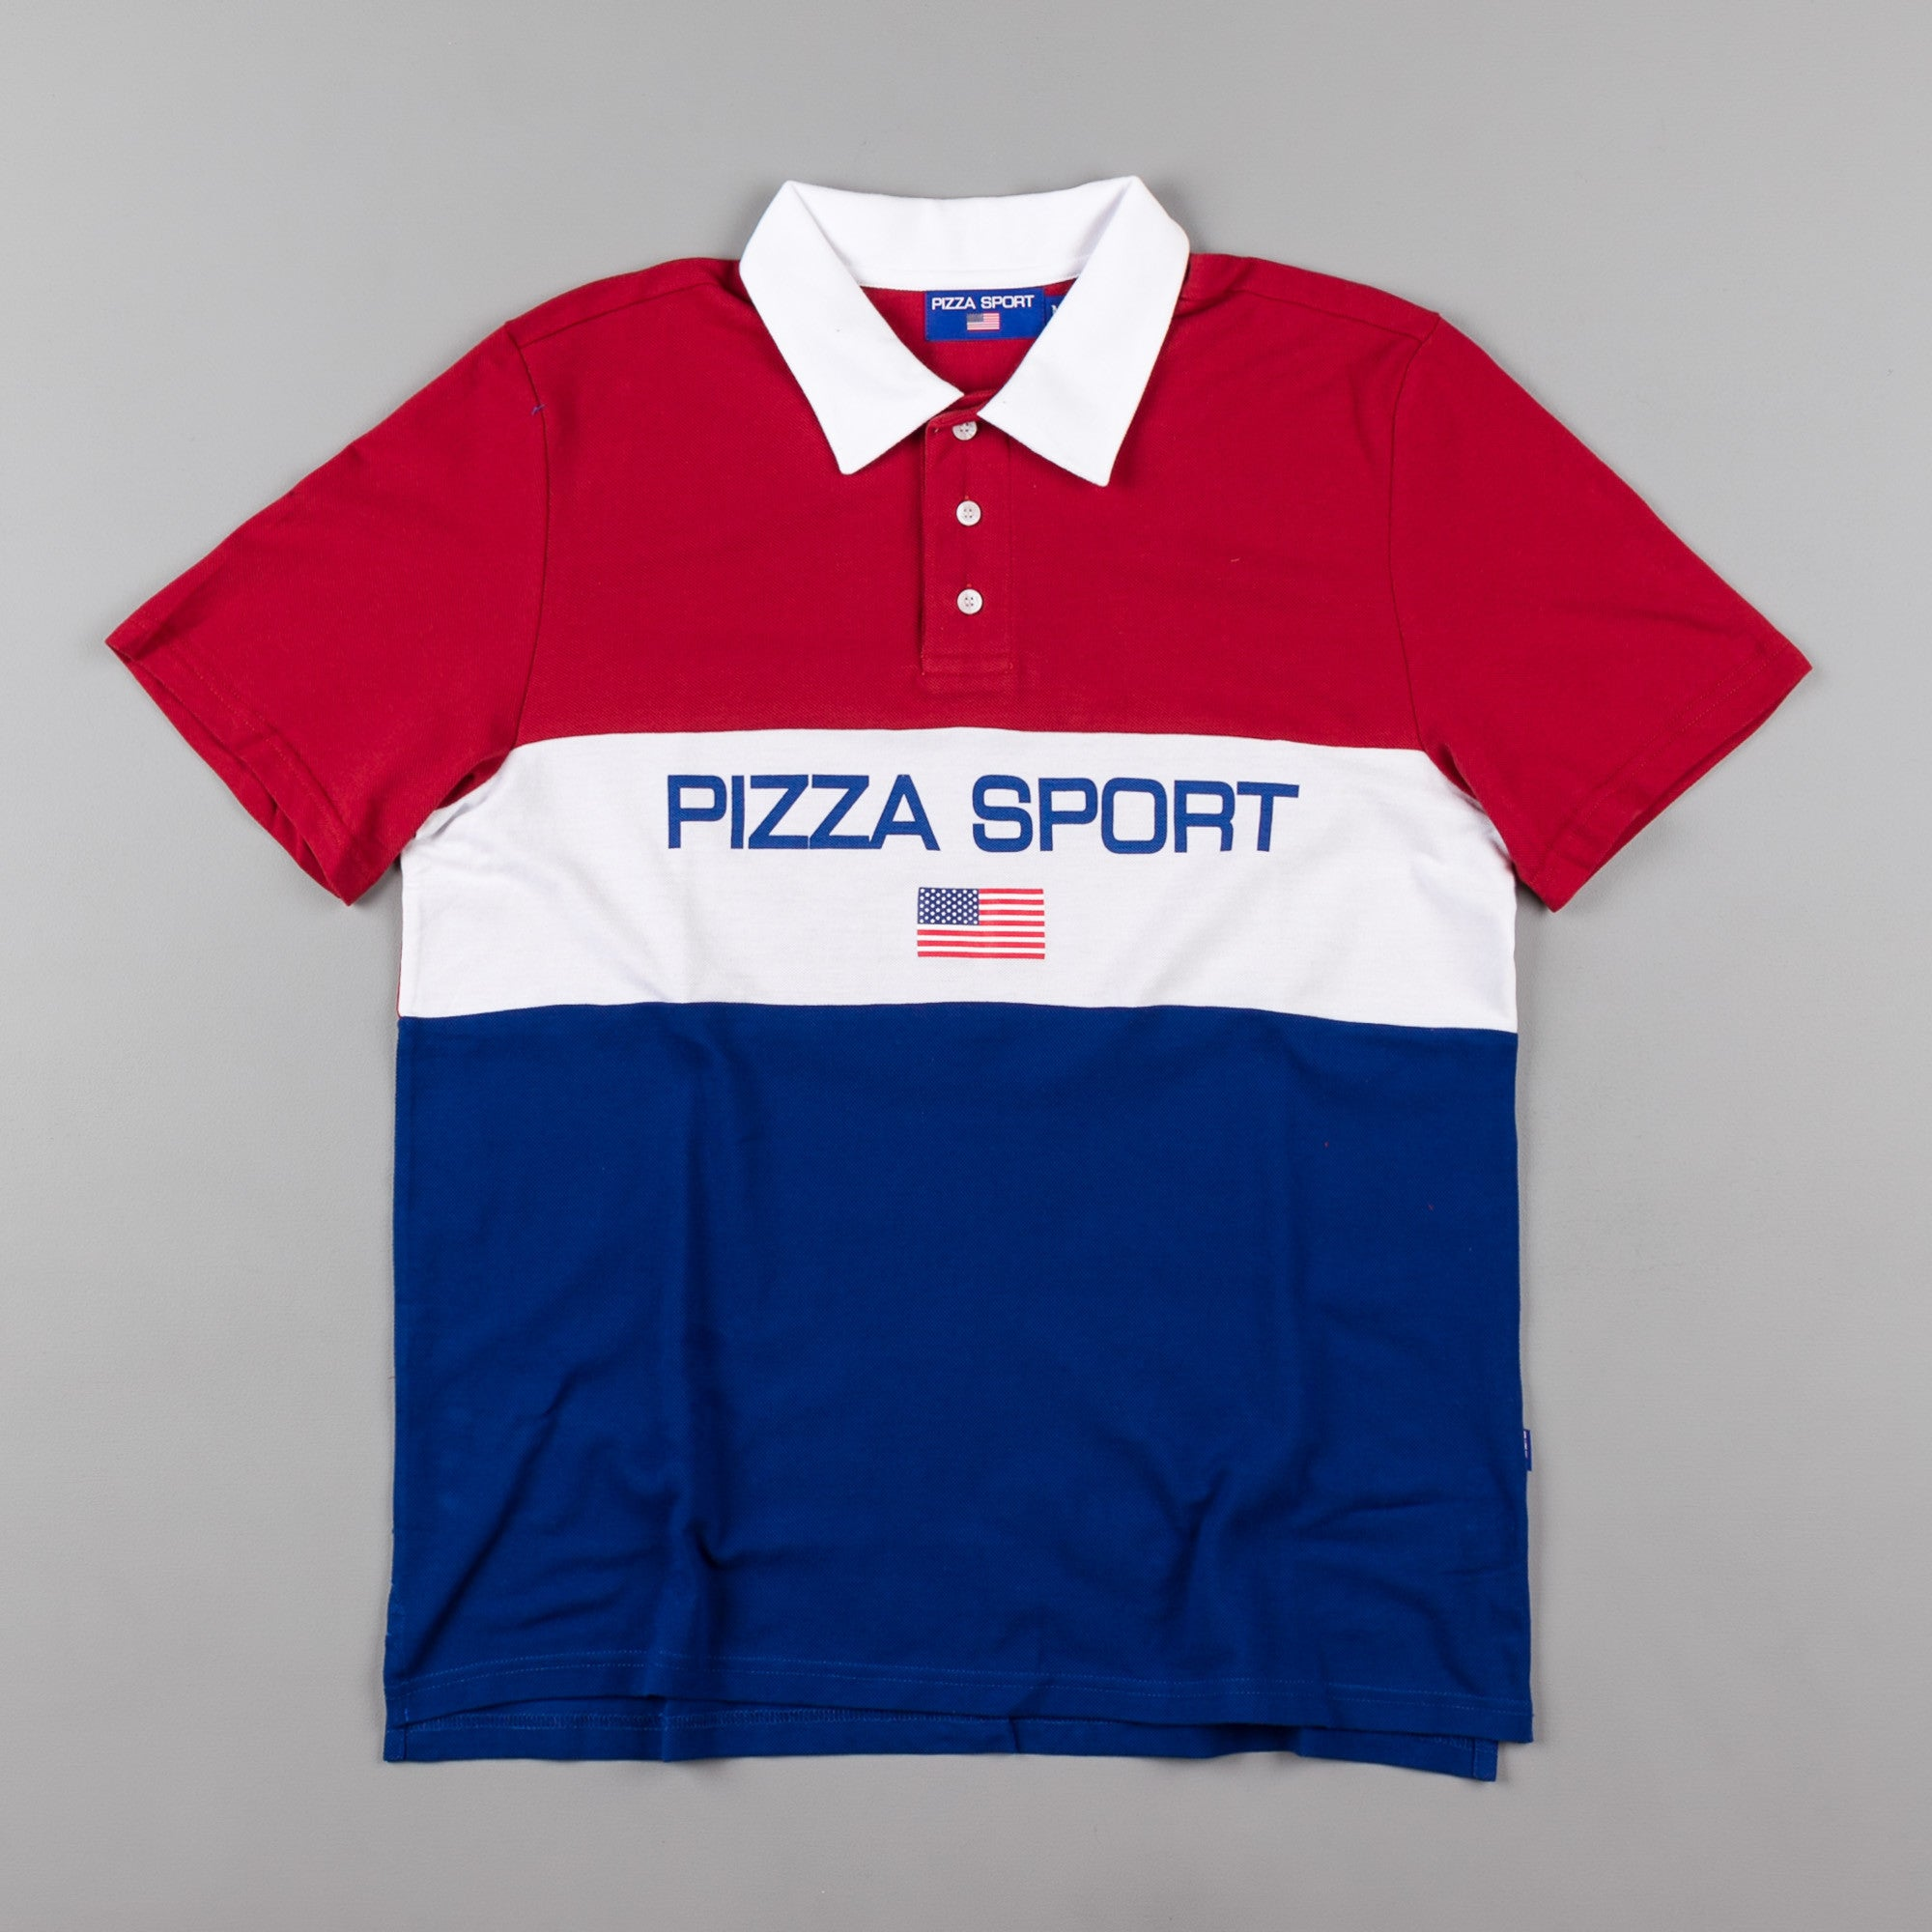 Pizza Skateboards Pizza Sport Polo Shirt - Red / White / Blue